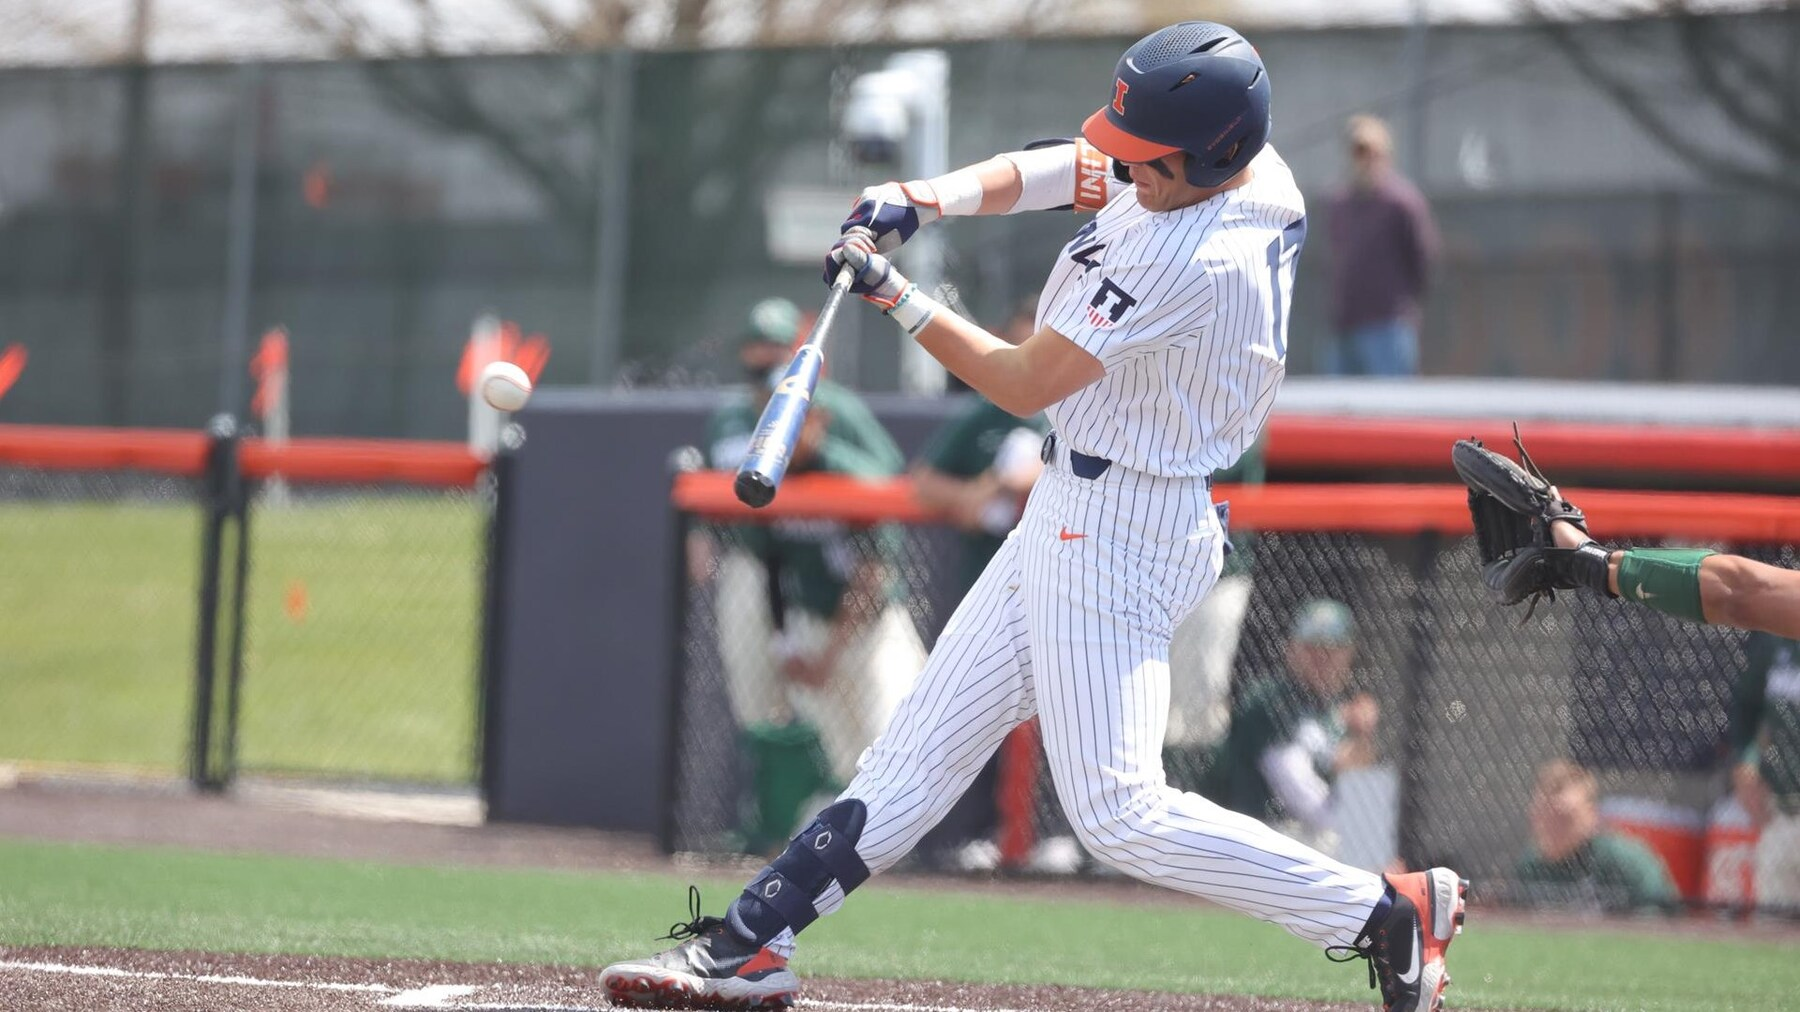 Infielder Justin Janas makes contact with a pitch